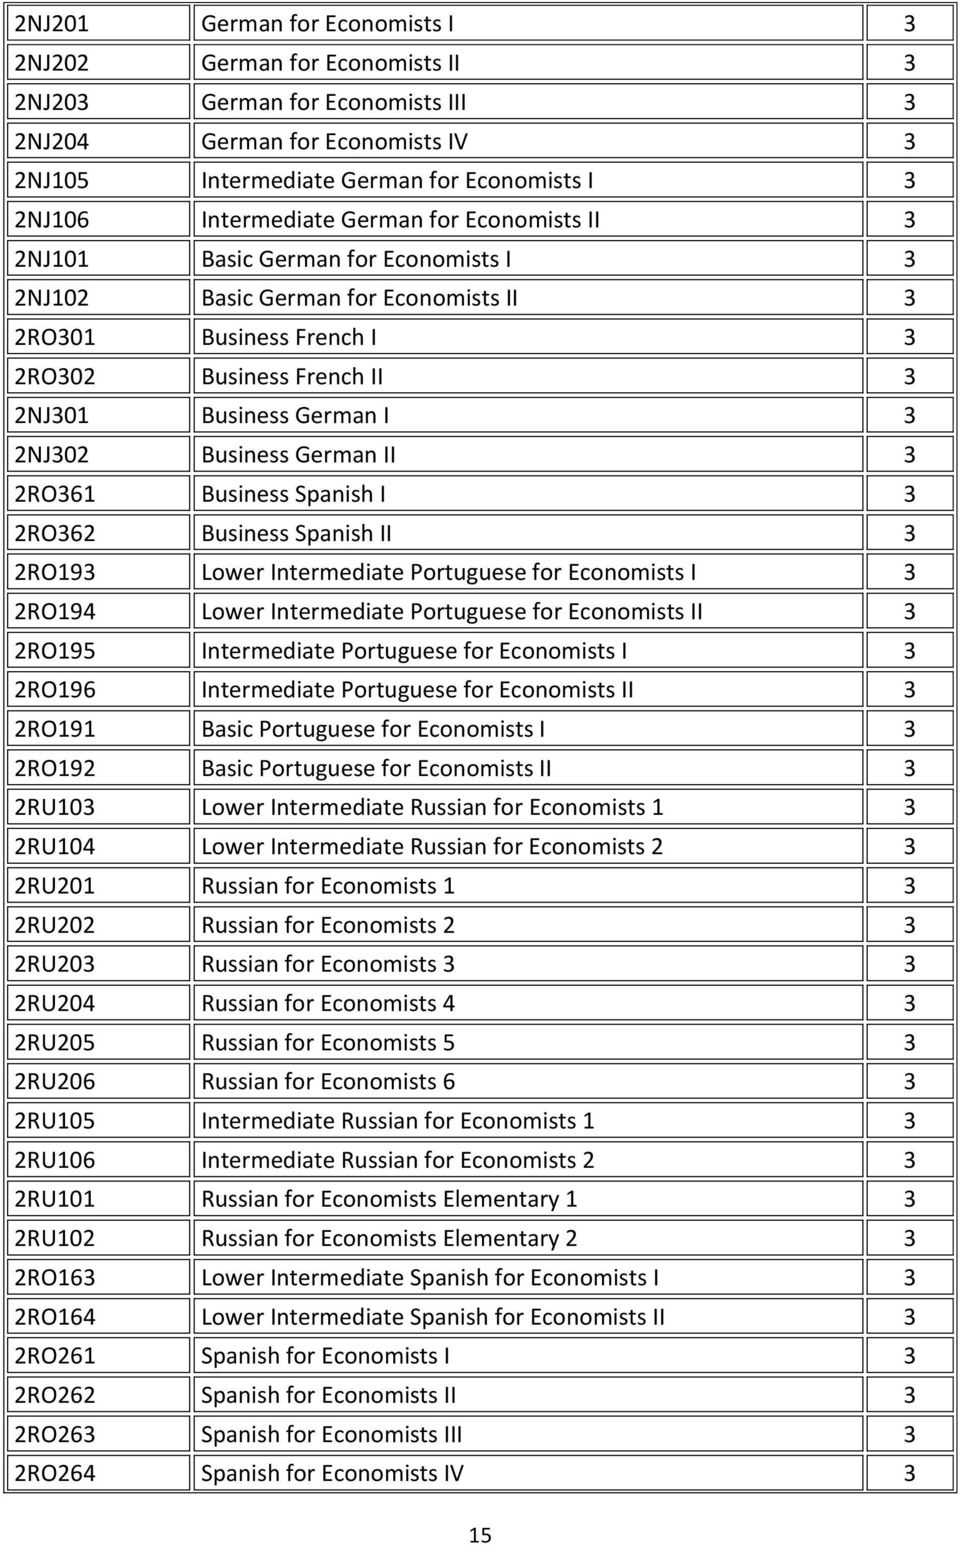 3 2NJ302 Business German II 3 2RO361 Business Spanish I 3 2RO362 Business Spanish II 3 2RO193 Lower Intermediate Portuguese for Economists I 3 2RO194 Lower Intermediate Portuguese for Economists II 3